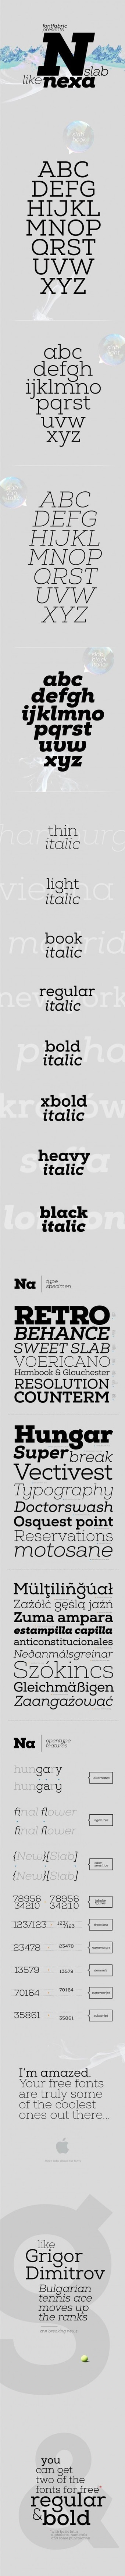 Nexa Slab Free Font - Designer First | Design Inspiration | Scoop.it